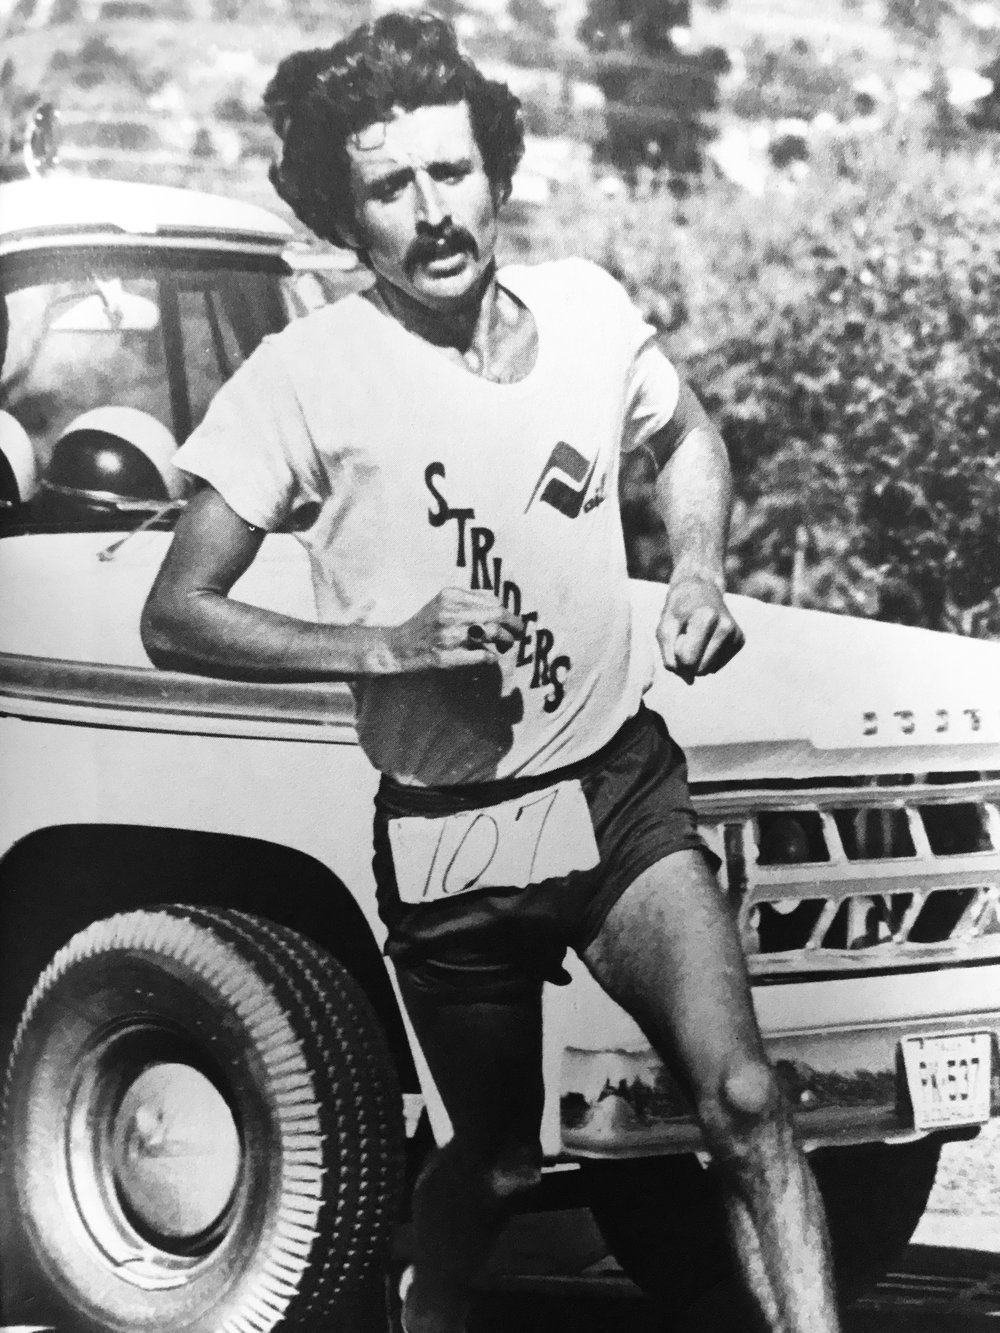 Frank Shorter, 1972 Olympic Marathon gold medalist and the father of the first American distance running boom.